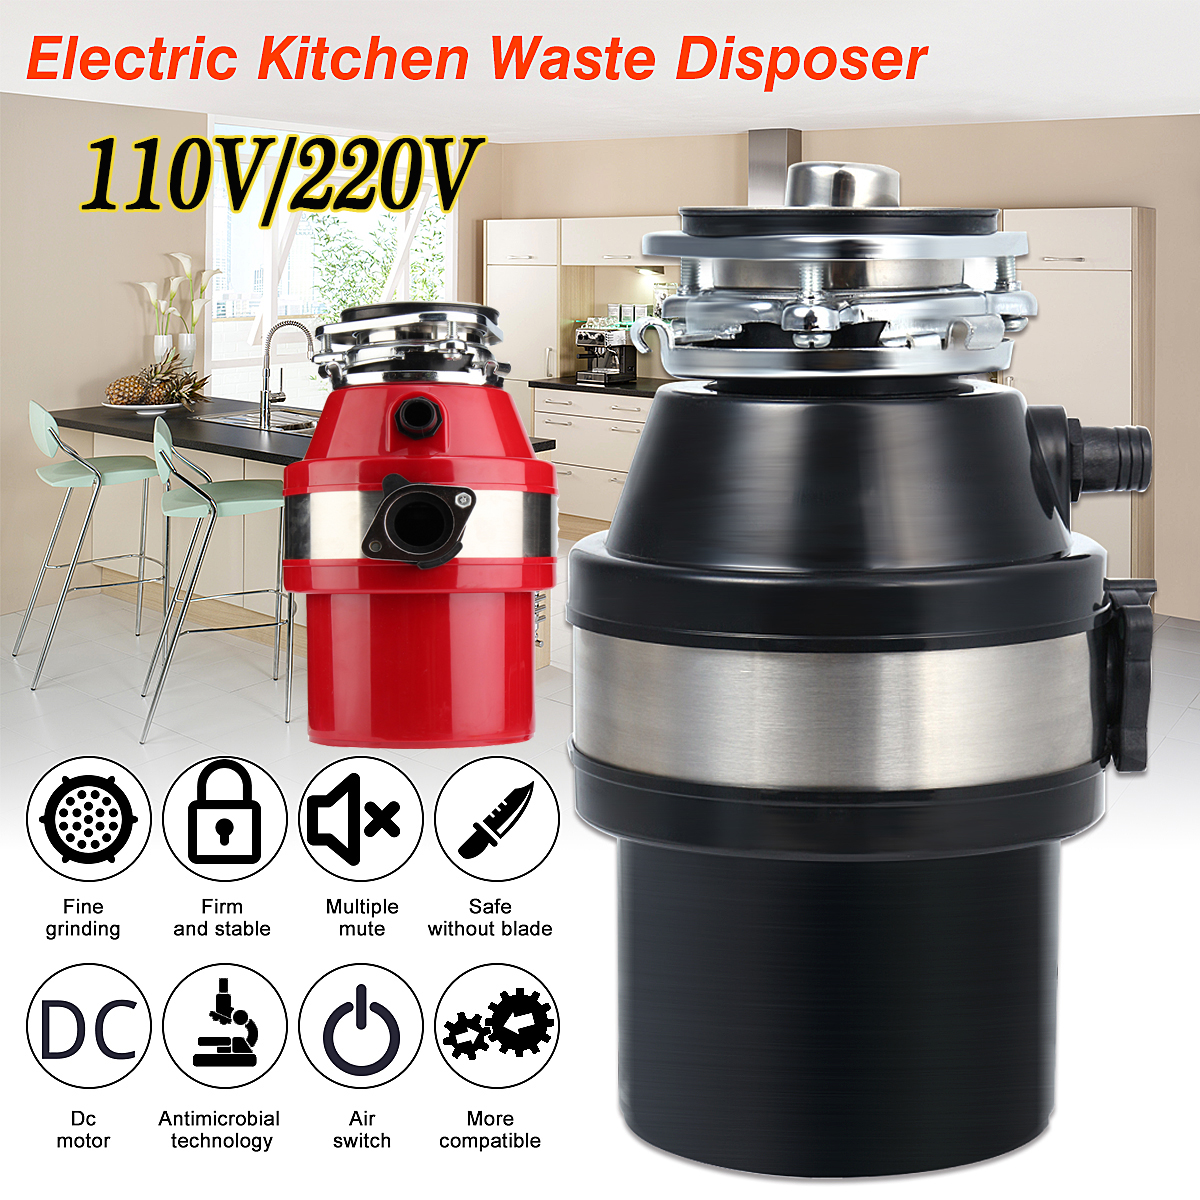 Household Food Waste Disposer 110V 370W 2600rpm 900mL Electric Garbage Disposal Waste Disposer High Density Alloy Material